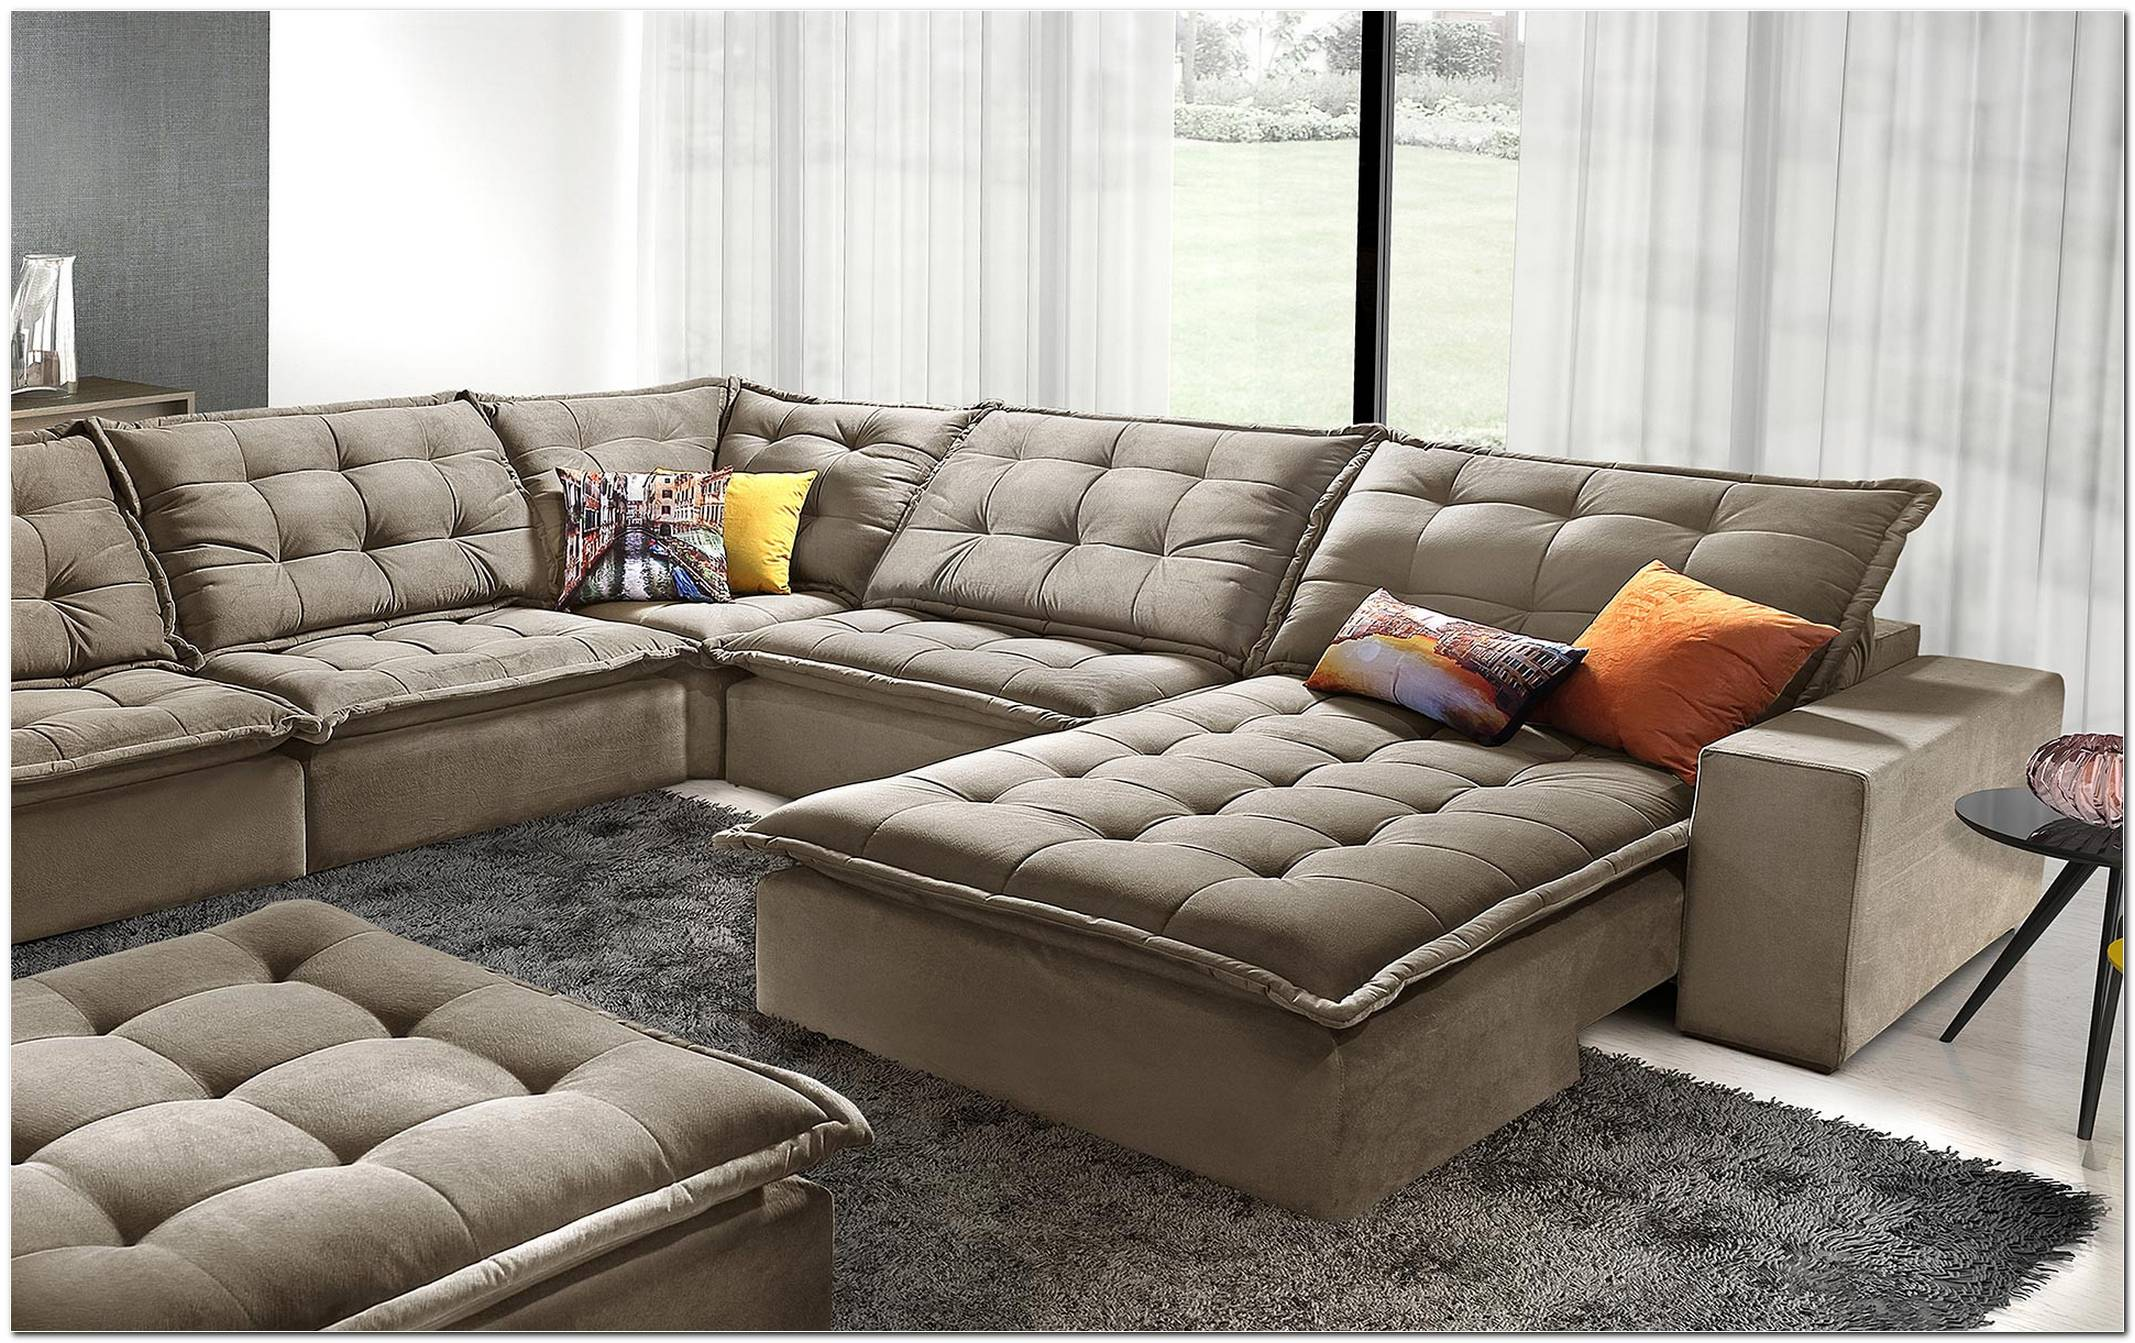 Sofa De Canto Retratil E Reclinavel